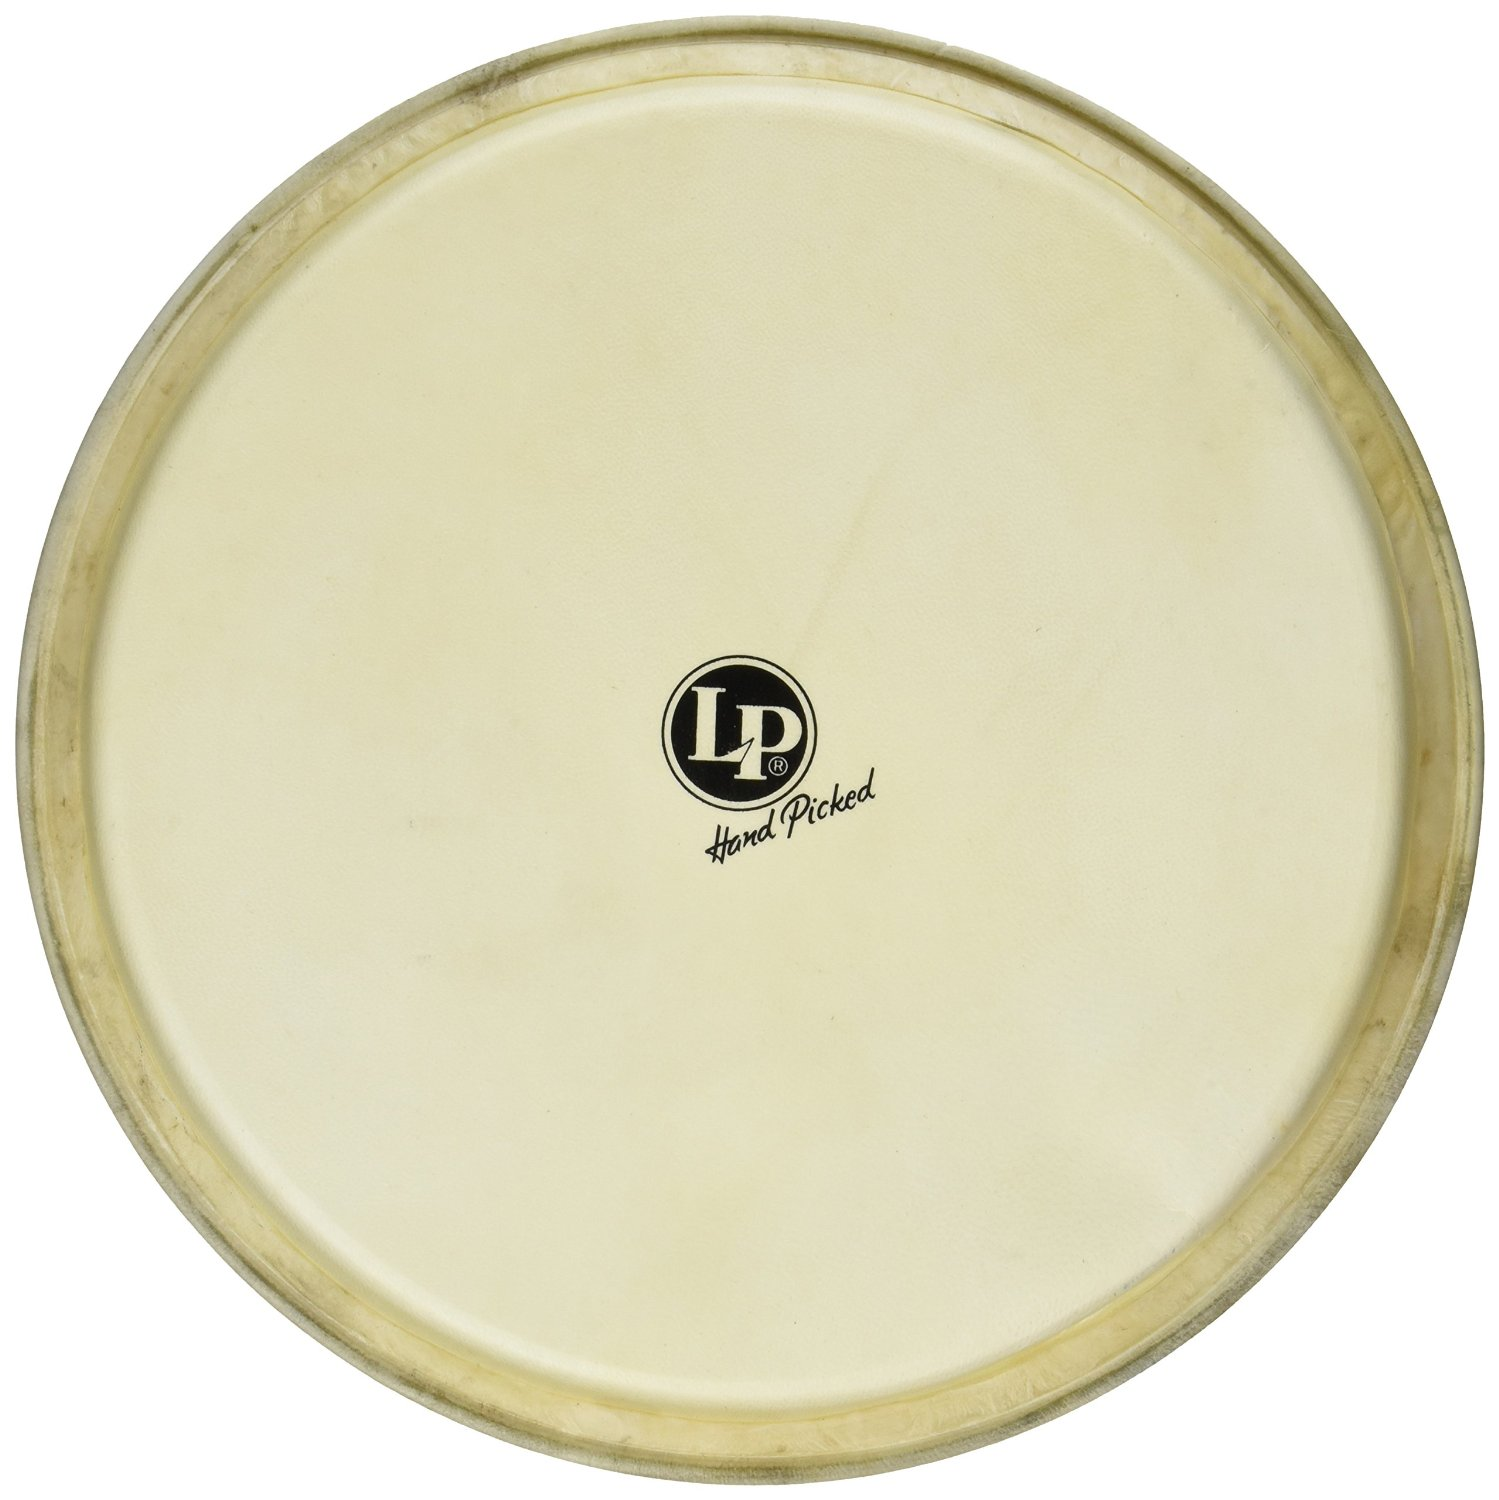 Latin Percussion LP961 Djembe Head for LP720 12.5 Inch